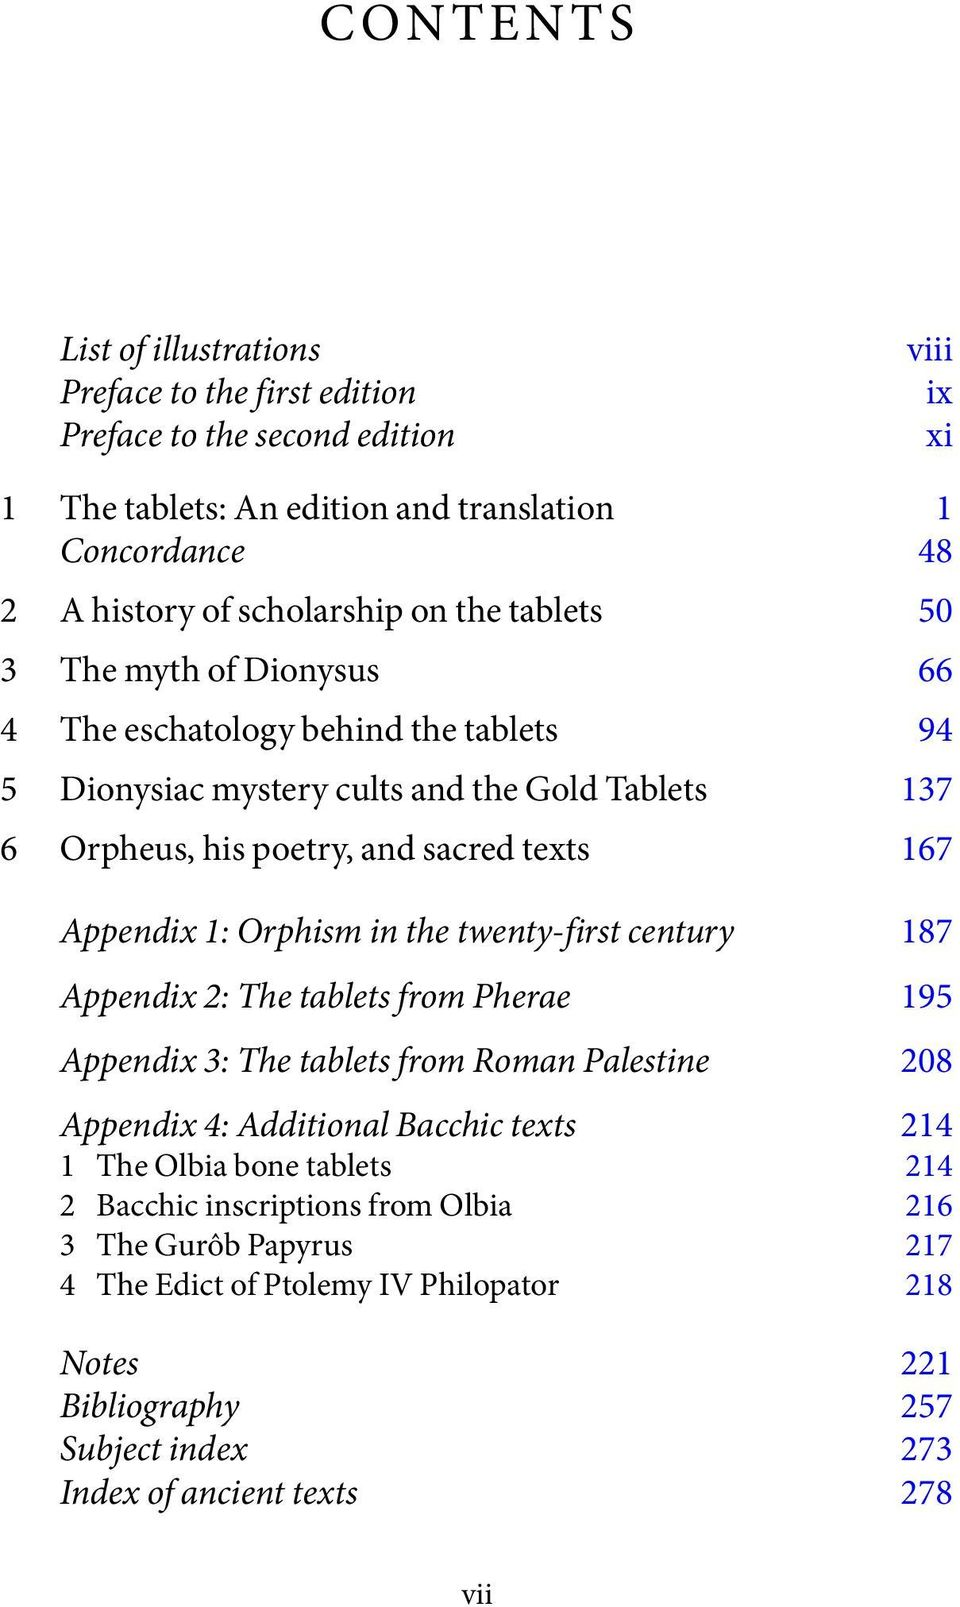 1: Orphism in the twenty-first century 187 Appendix 2: The tablets from Pherae 195 Appendix 3: The tablets from Roman Palestine 208 Appendix 4: Additional Bacchic texts 214 1 The Olbia